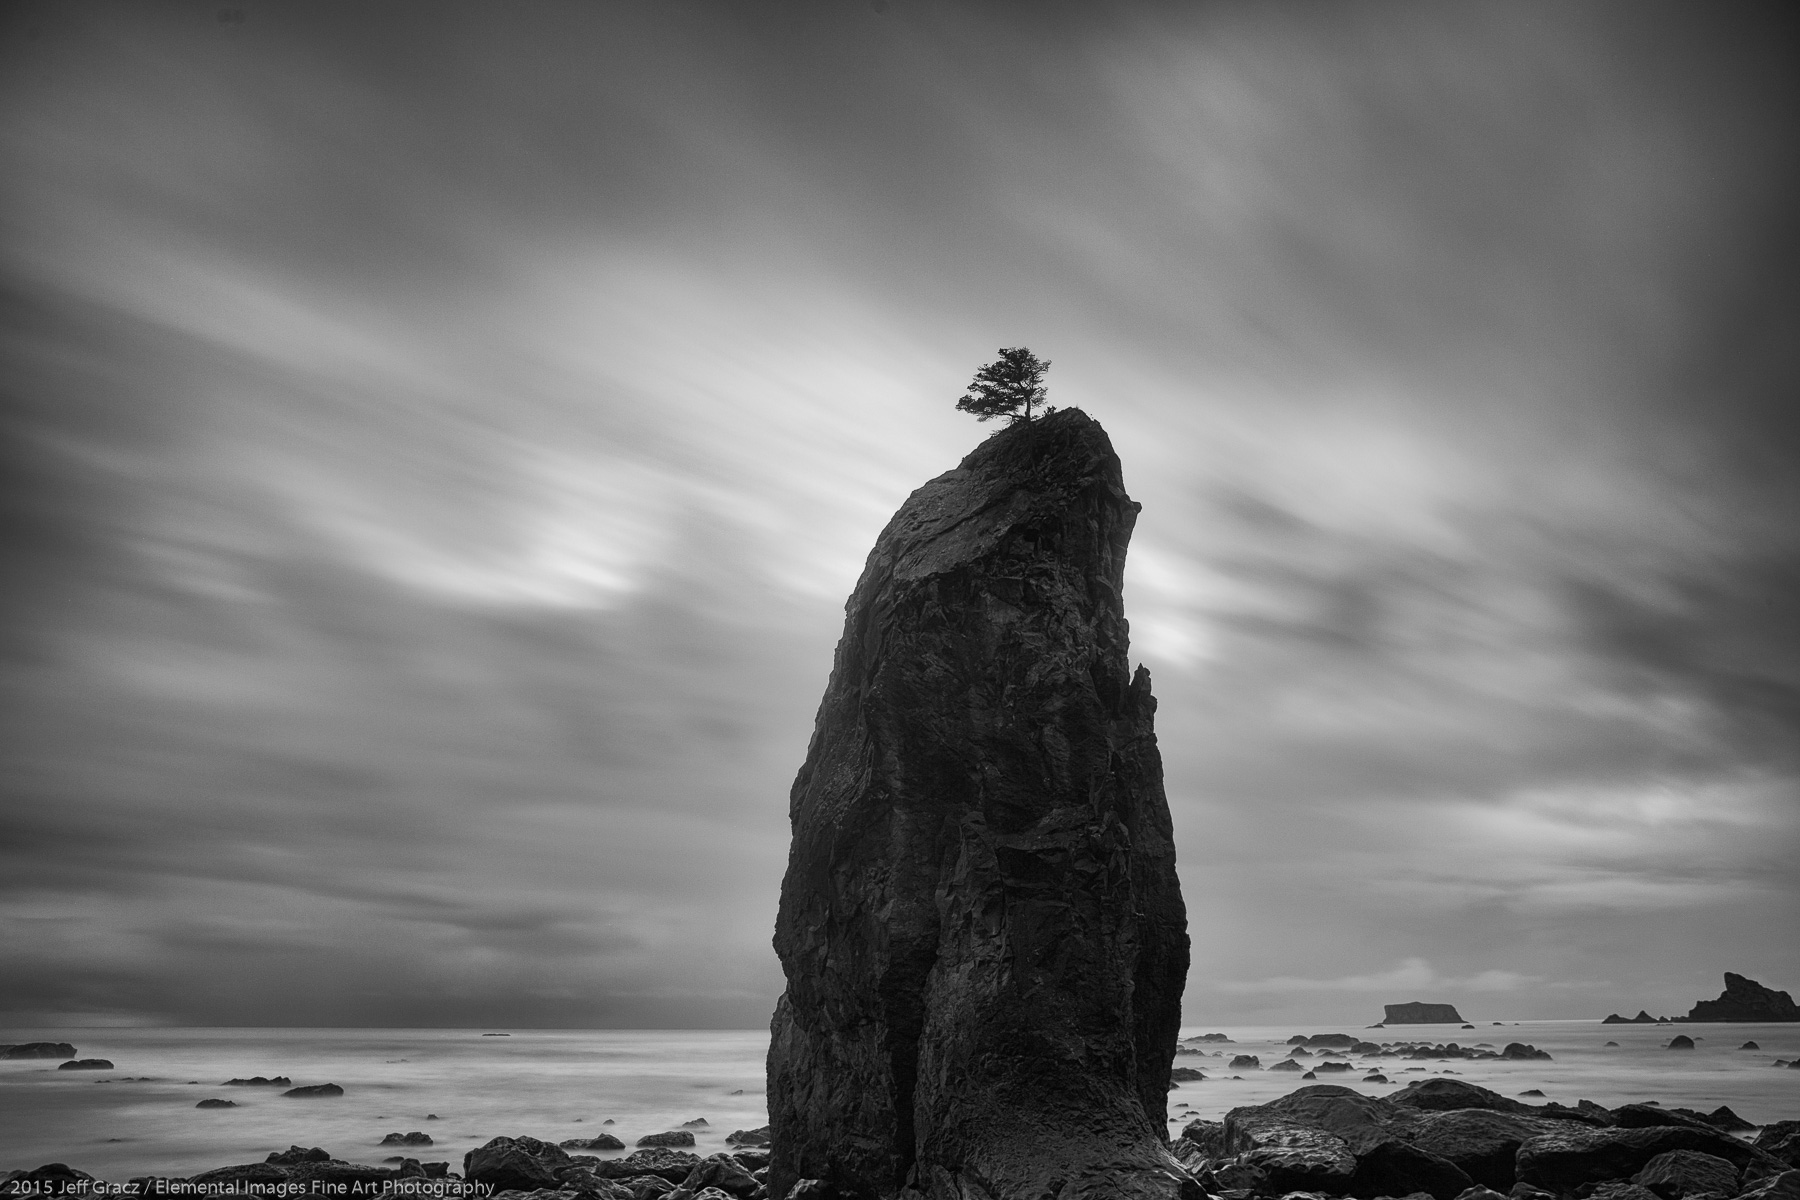 Lone tree with sea stack | Olympic National Park | WA | USA - © 2015 Jeff Gracz / Elemental Images Fine Art Photography - All Rights Reserved Worldwide